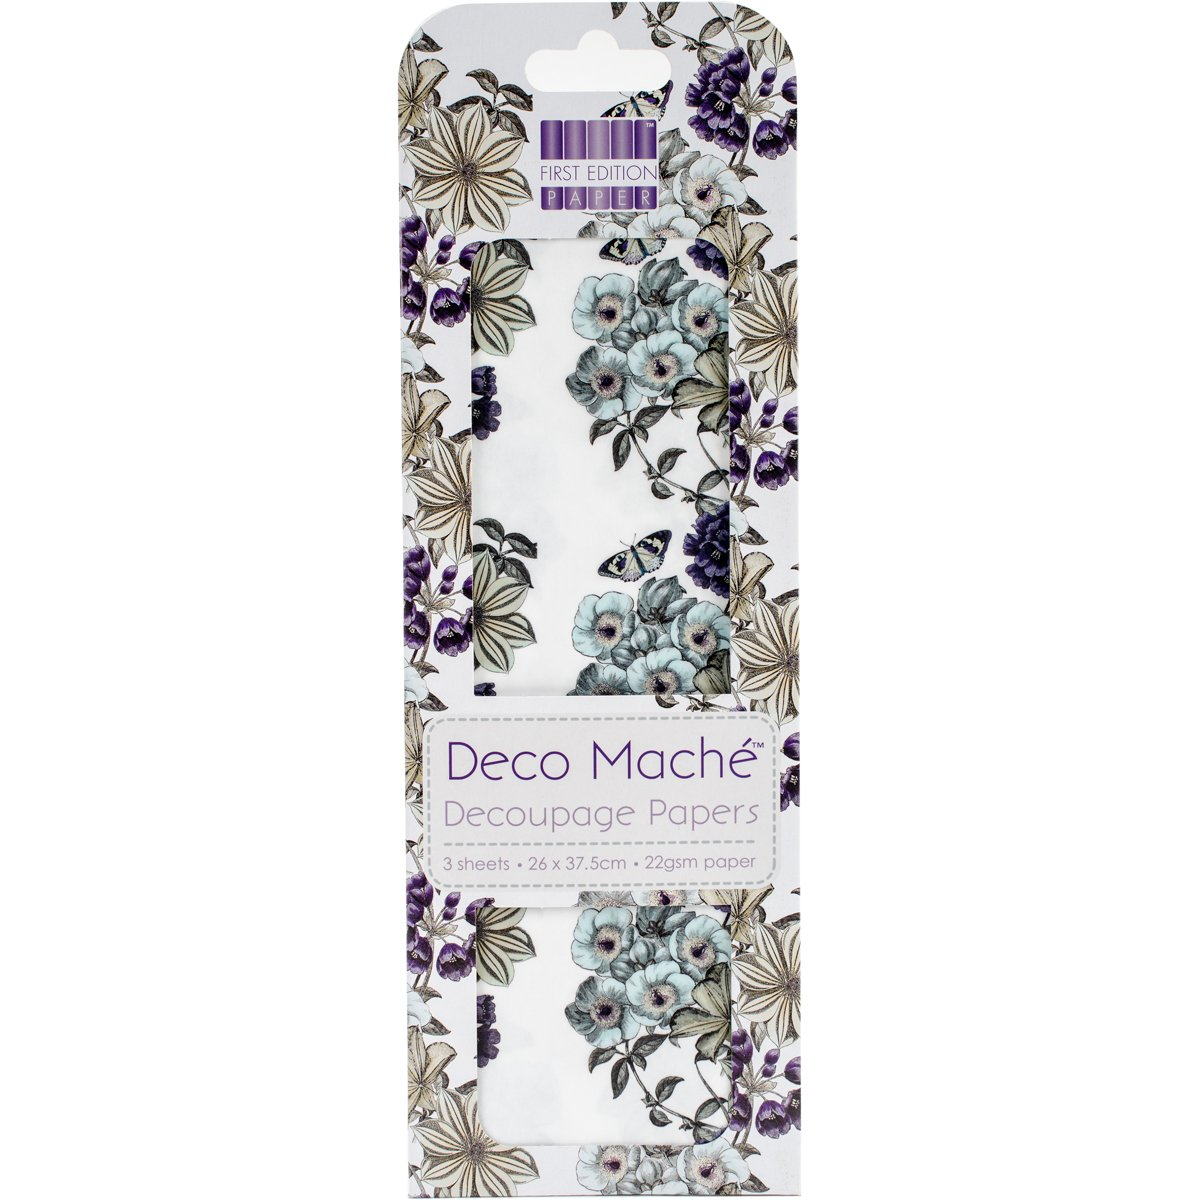 3 SHEETS OF DECOUPAGE DECO MACHE PAPER FIRST EDITION  BLOSSOM